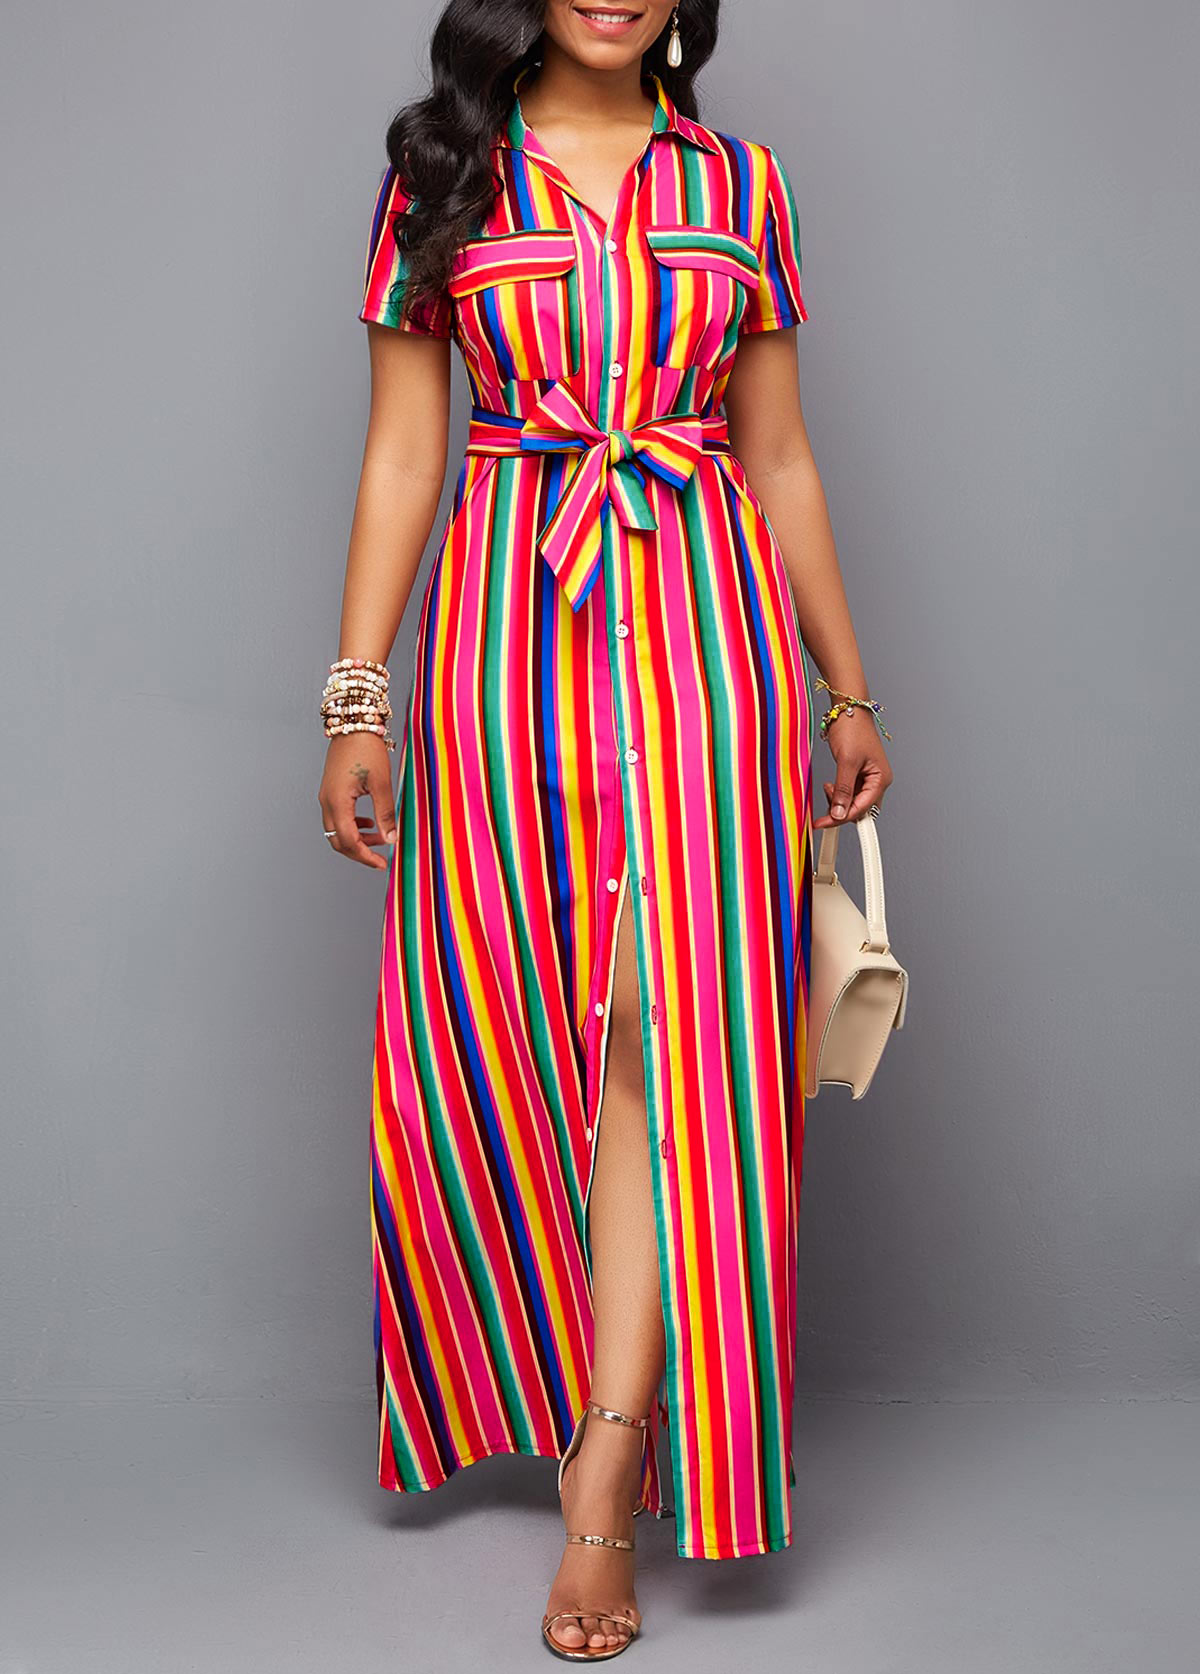 Turndown Collar Button Up Belted Rainbow Color Dress